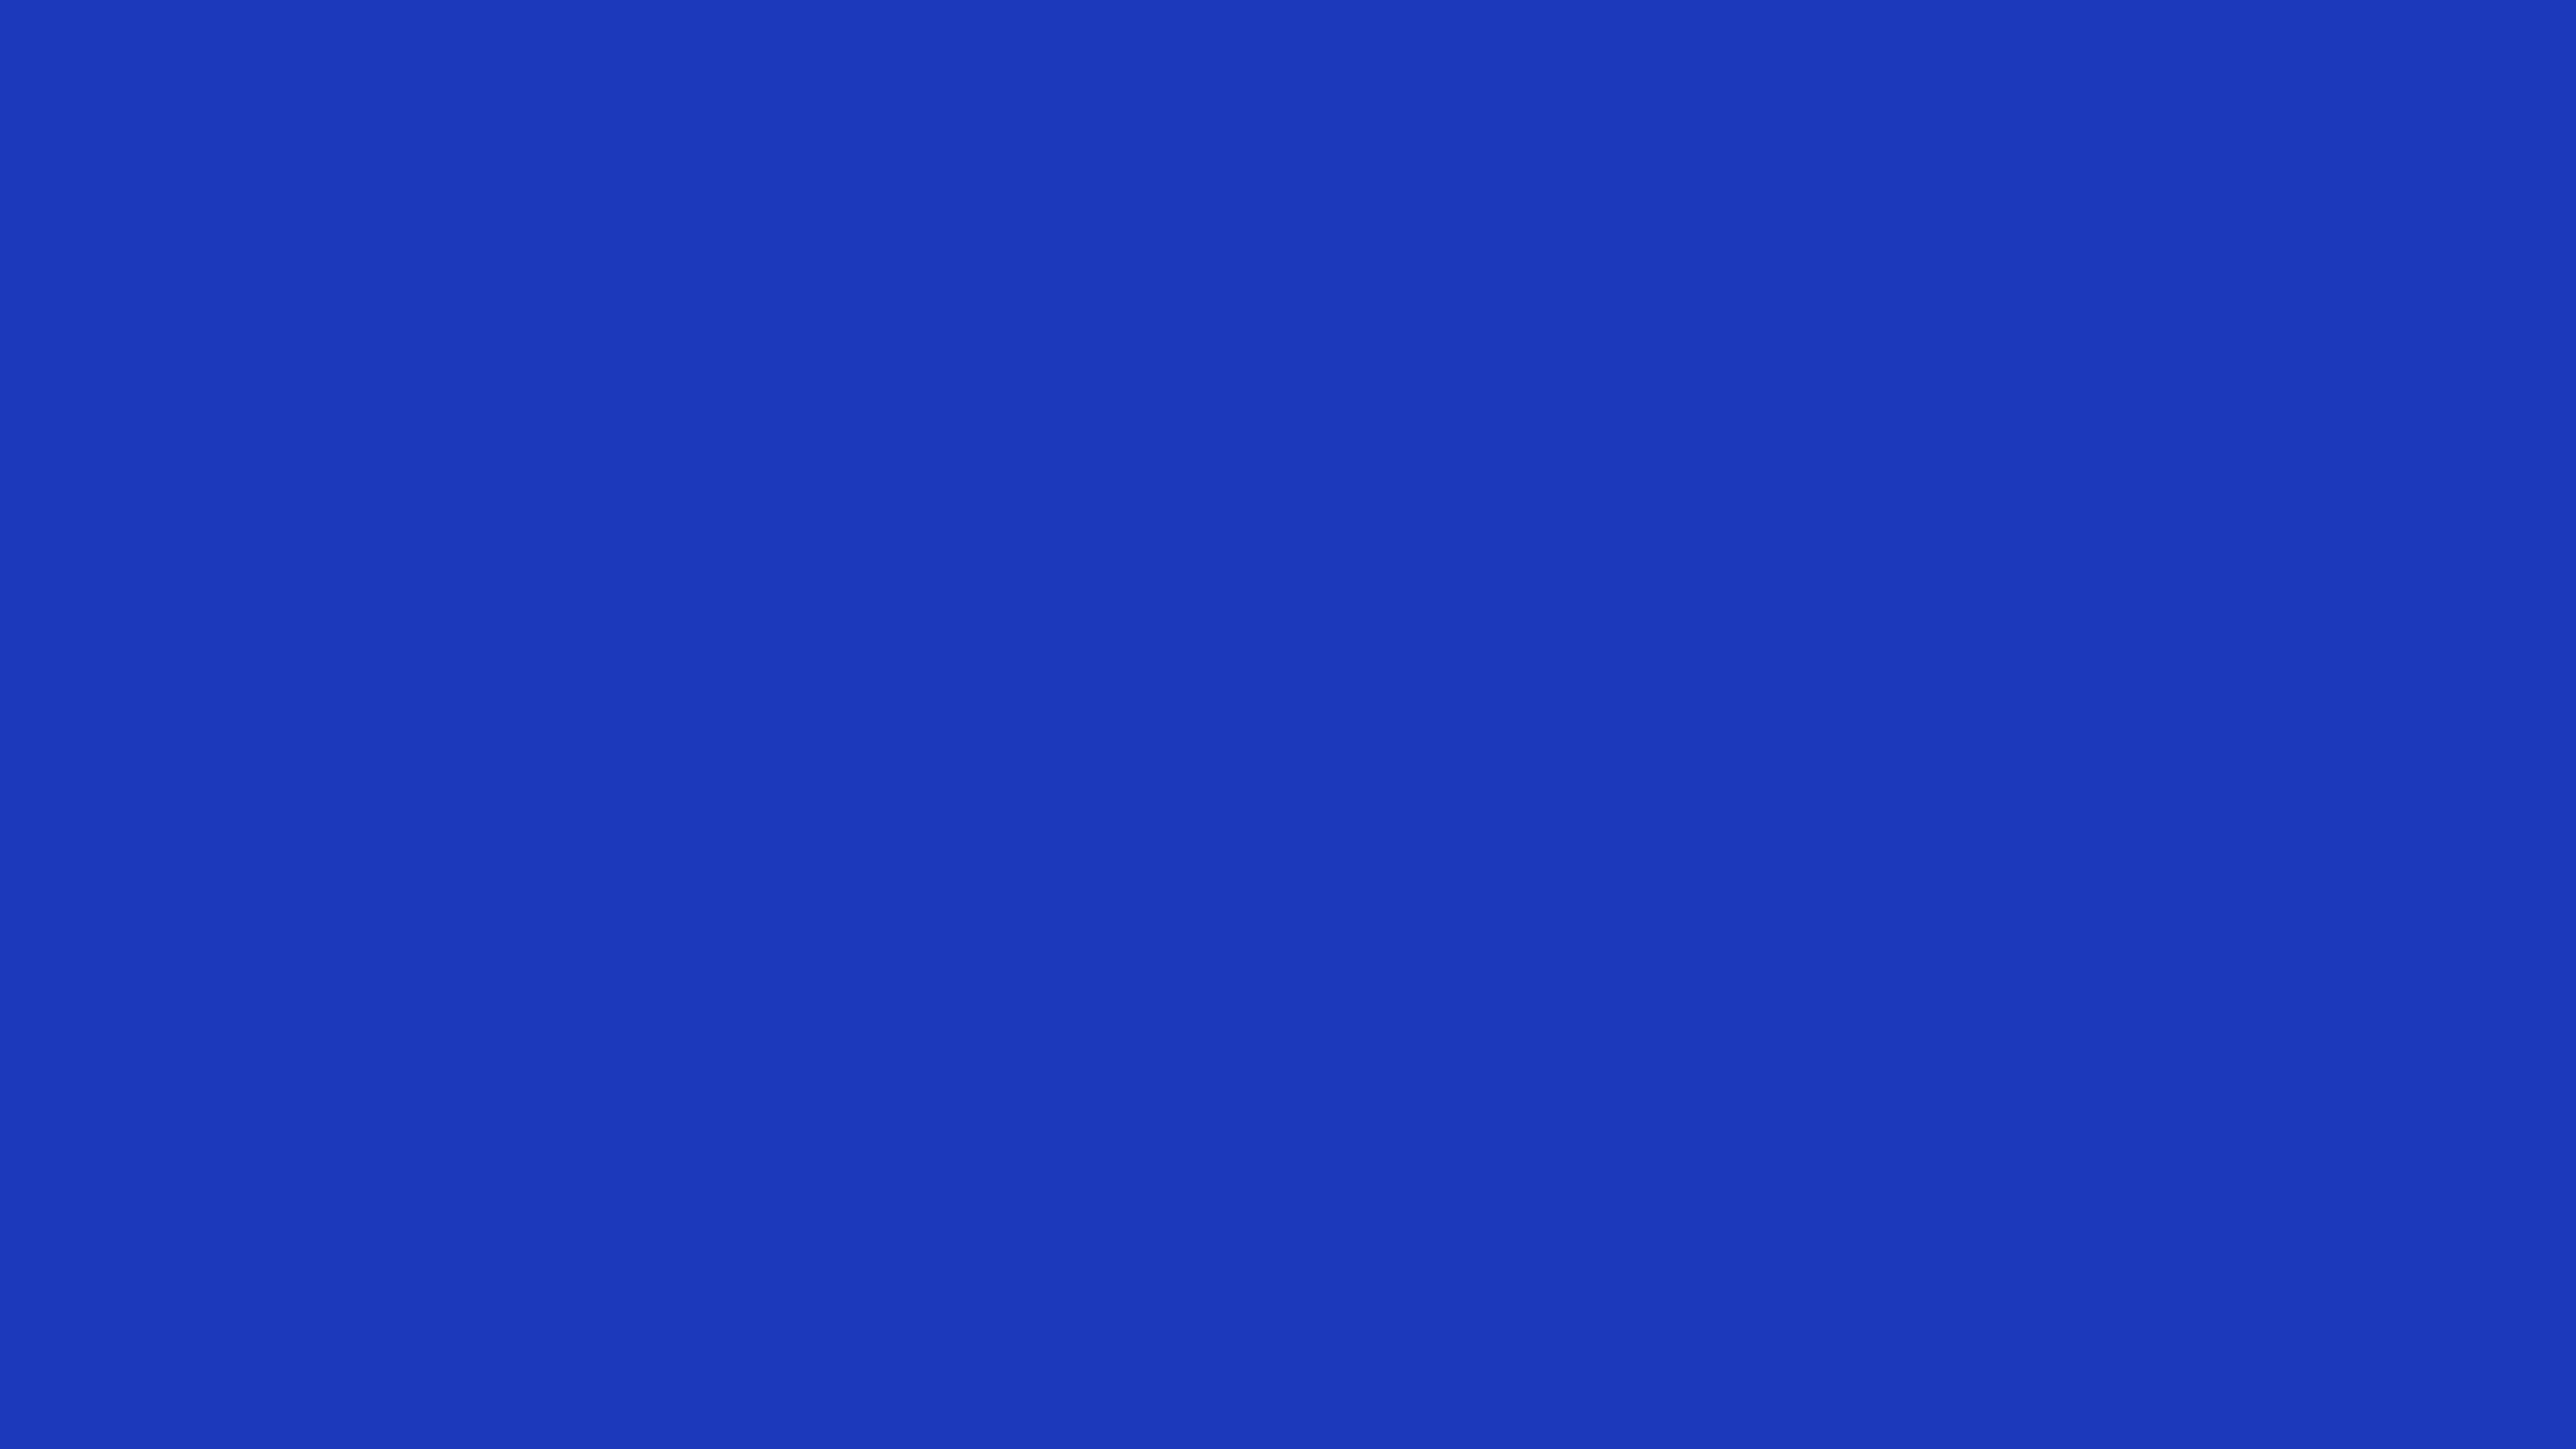 4096x2304 Persian Blue Solid Color Background